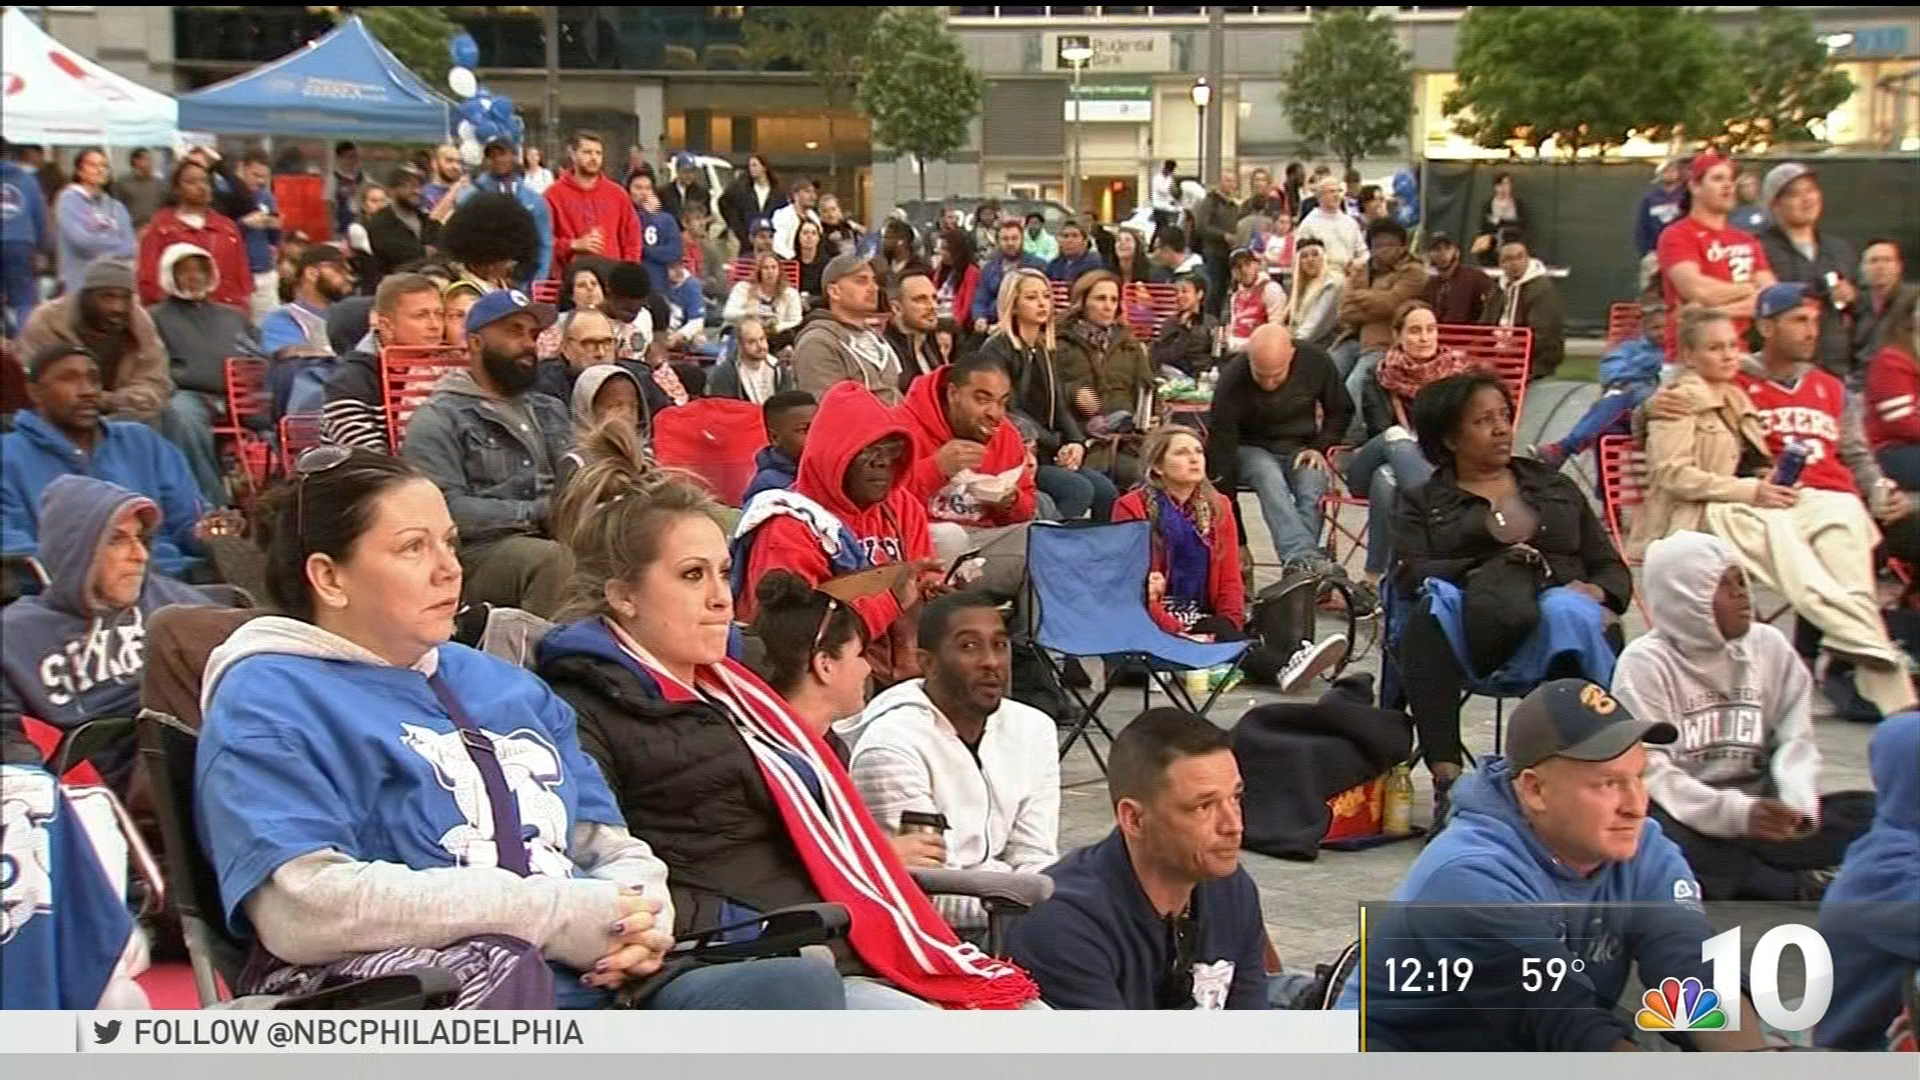 Sixers Fans Happy to Gather for Watch Party, Whatever the